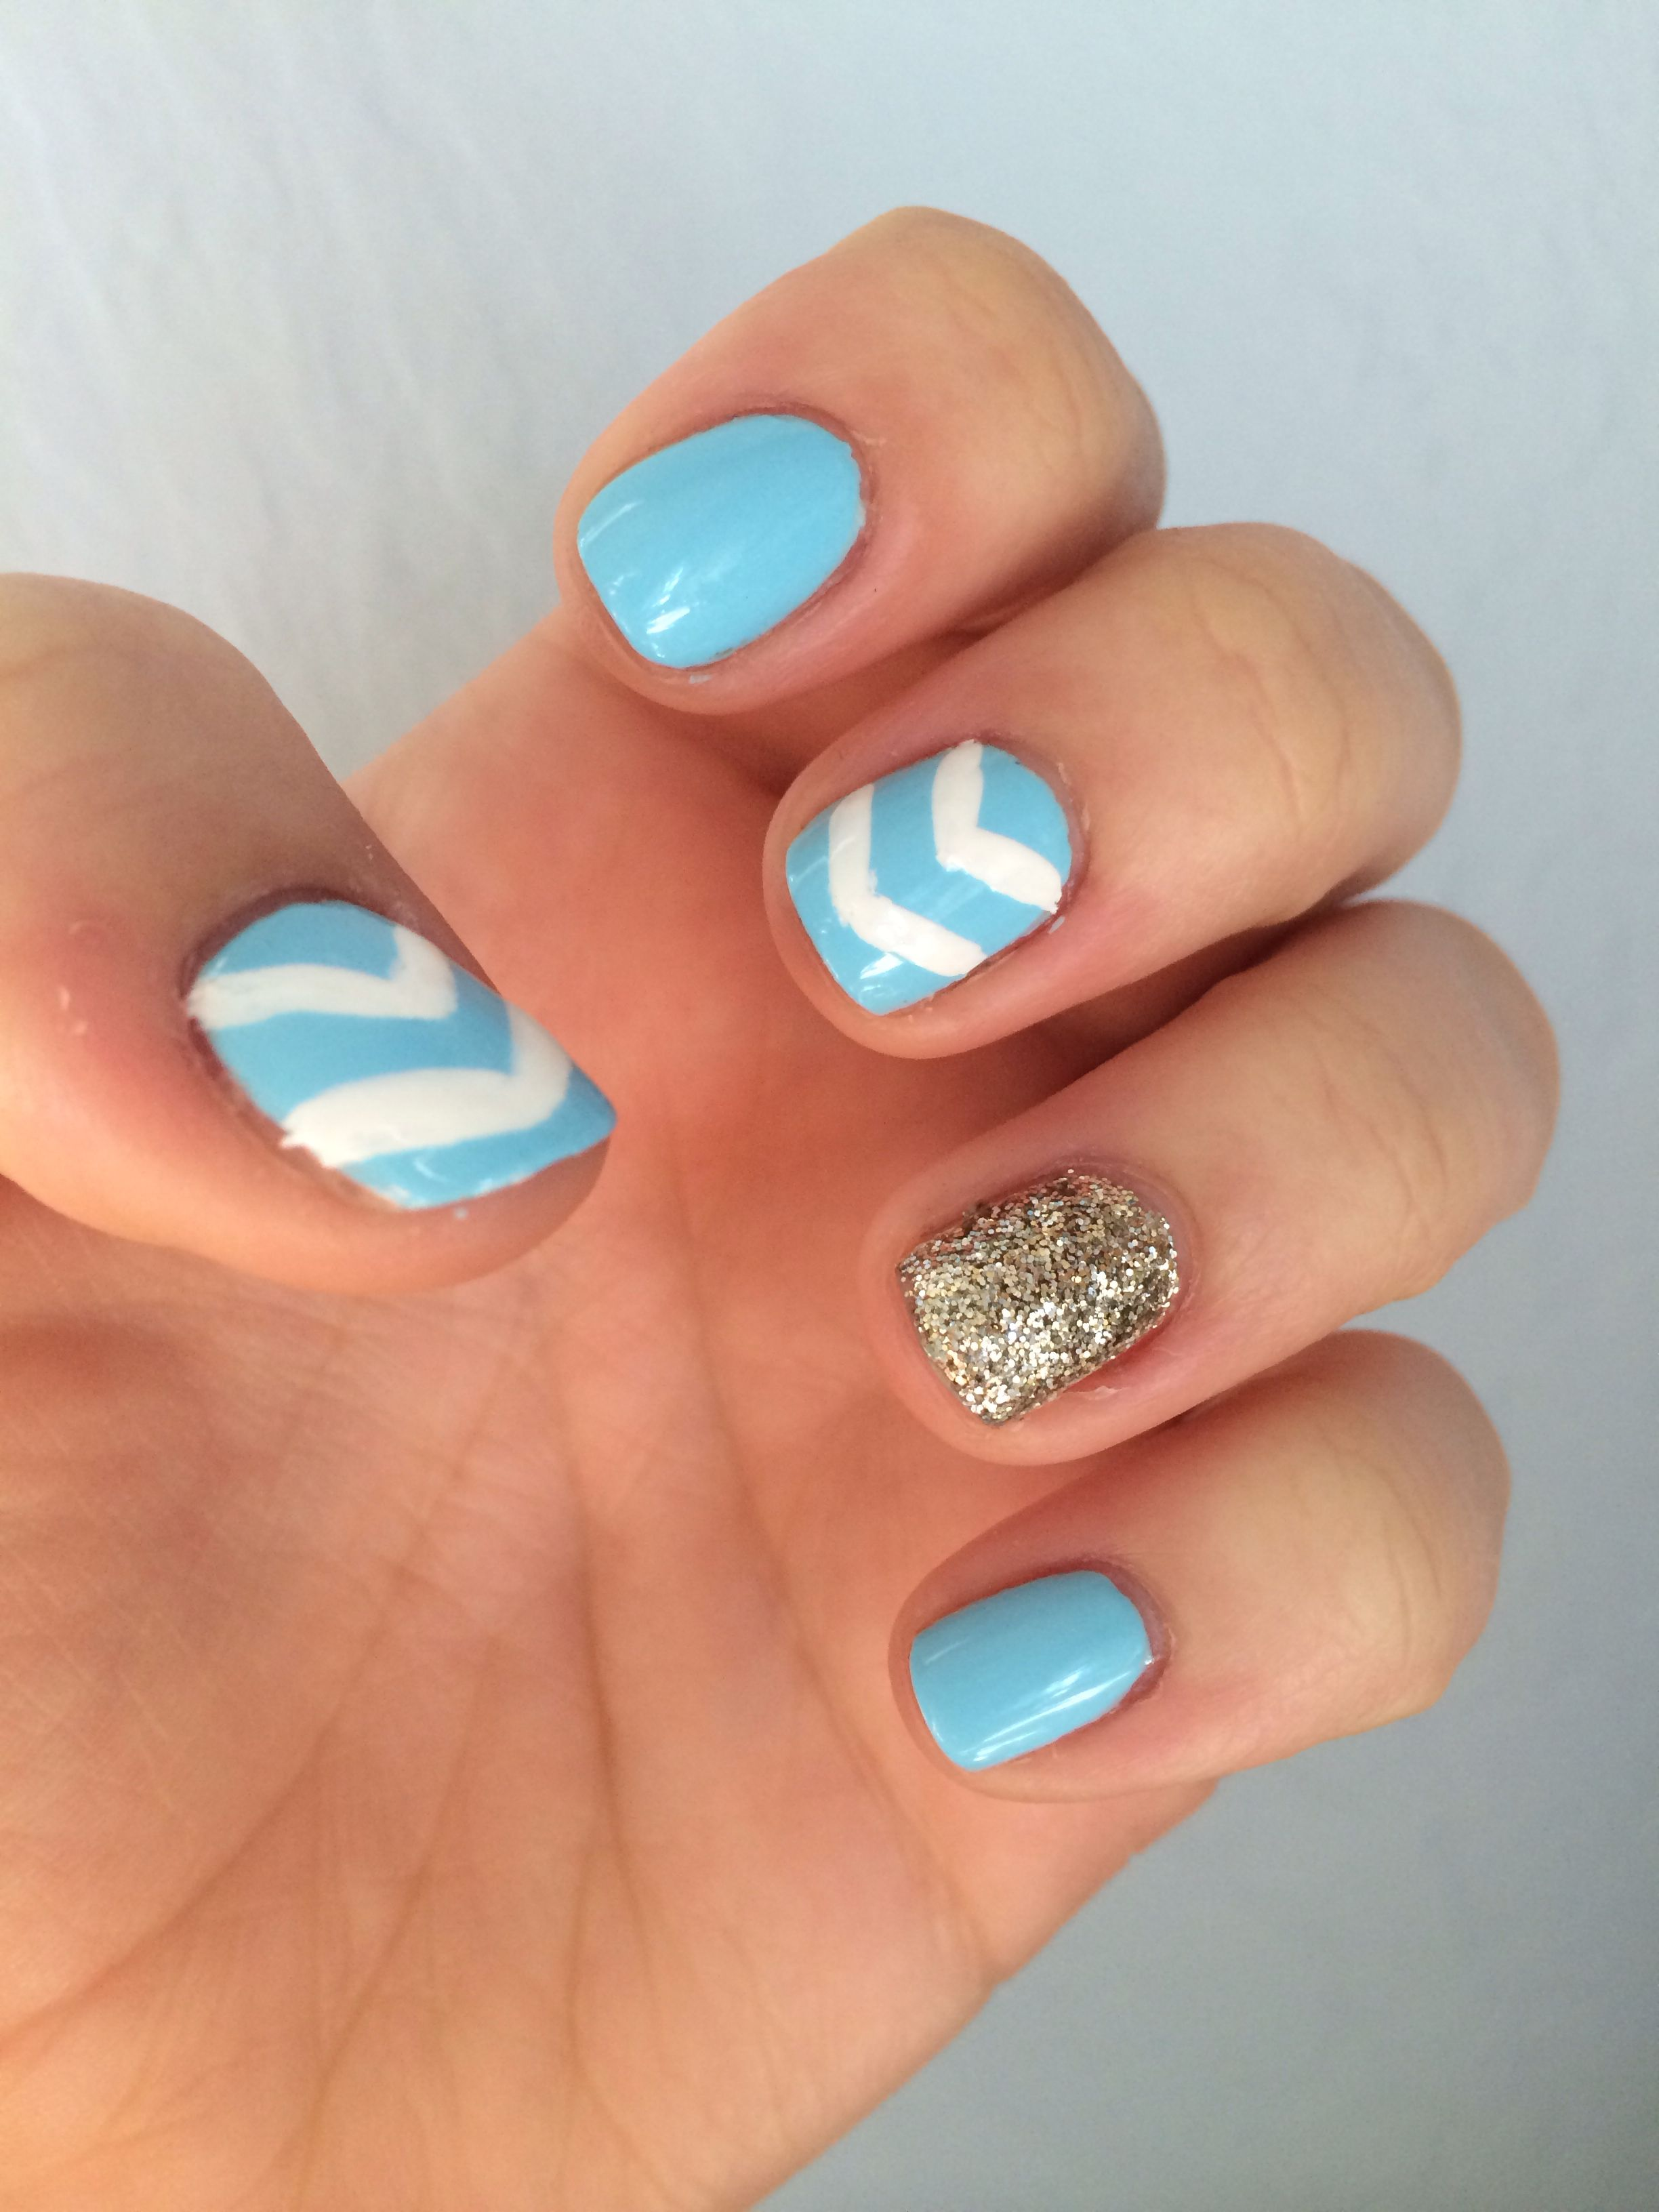 Baby blue with white chevron and gold accent nail for spring